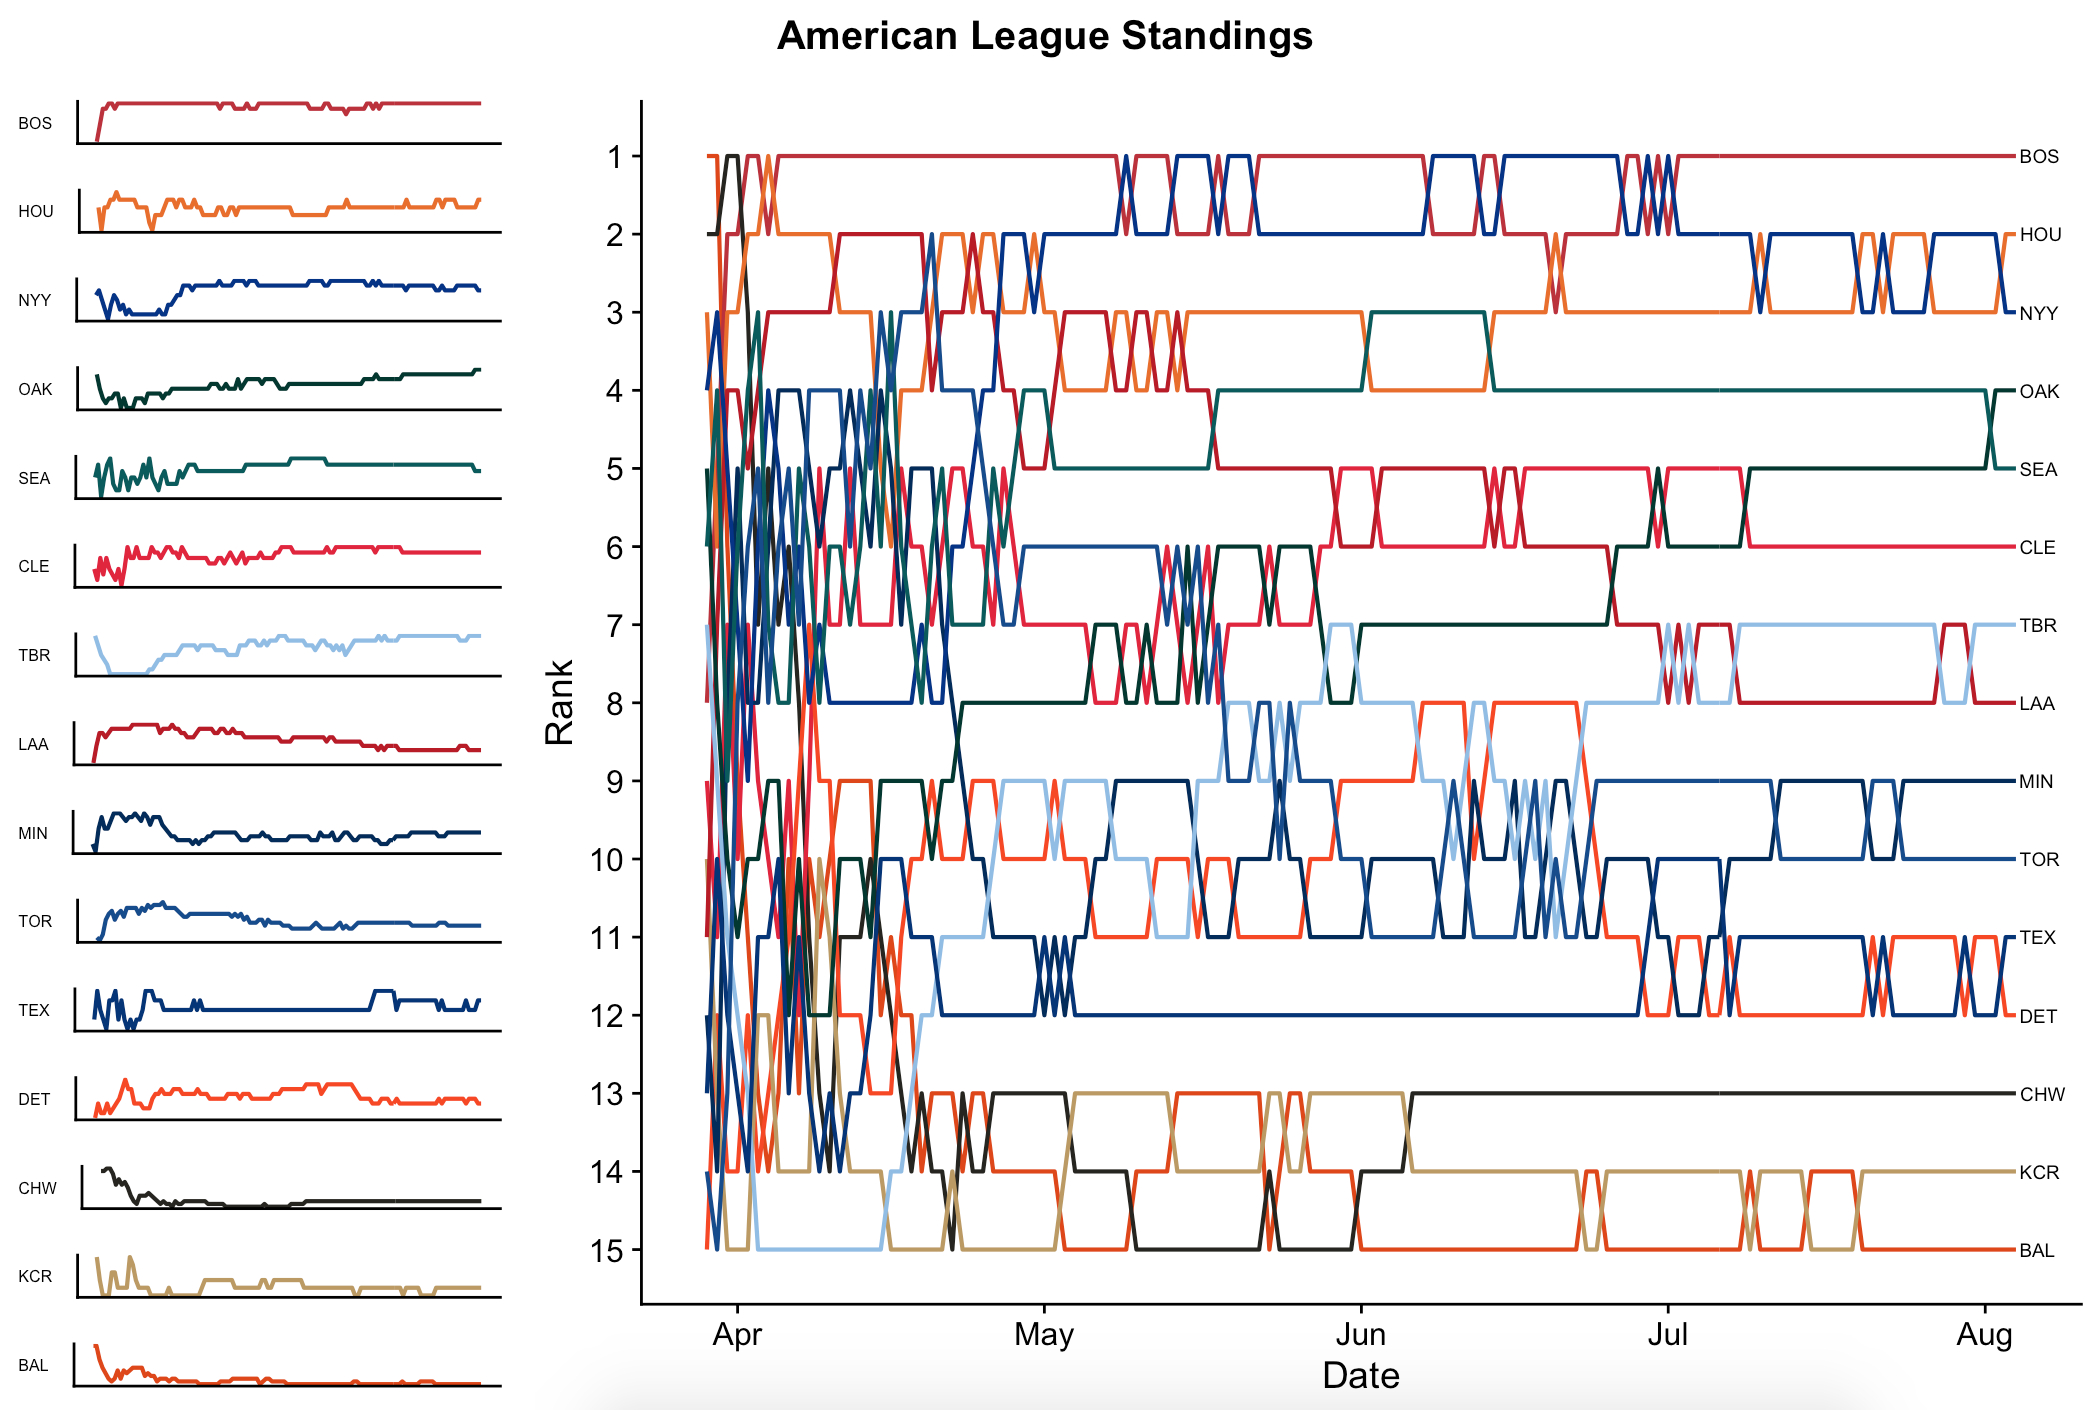 2018 Mlb Schedule Spreadsheet Throughout Visualizing Mlb Team Rankings With Ggplot2 And Bump Charts  James